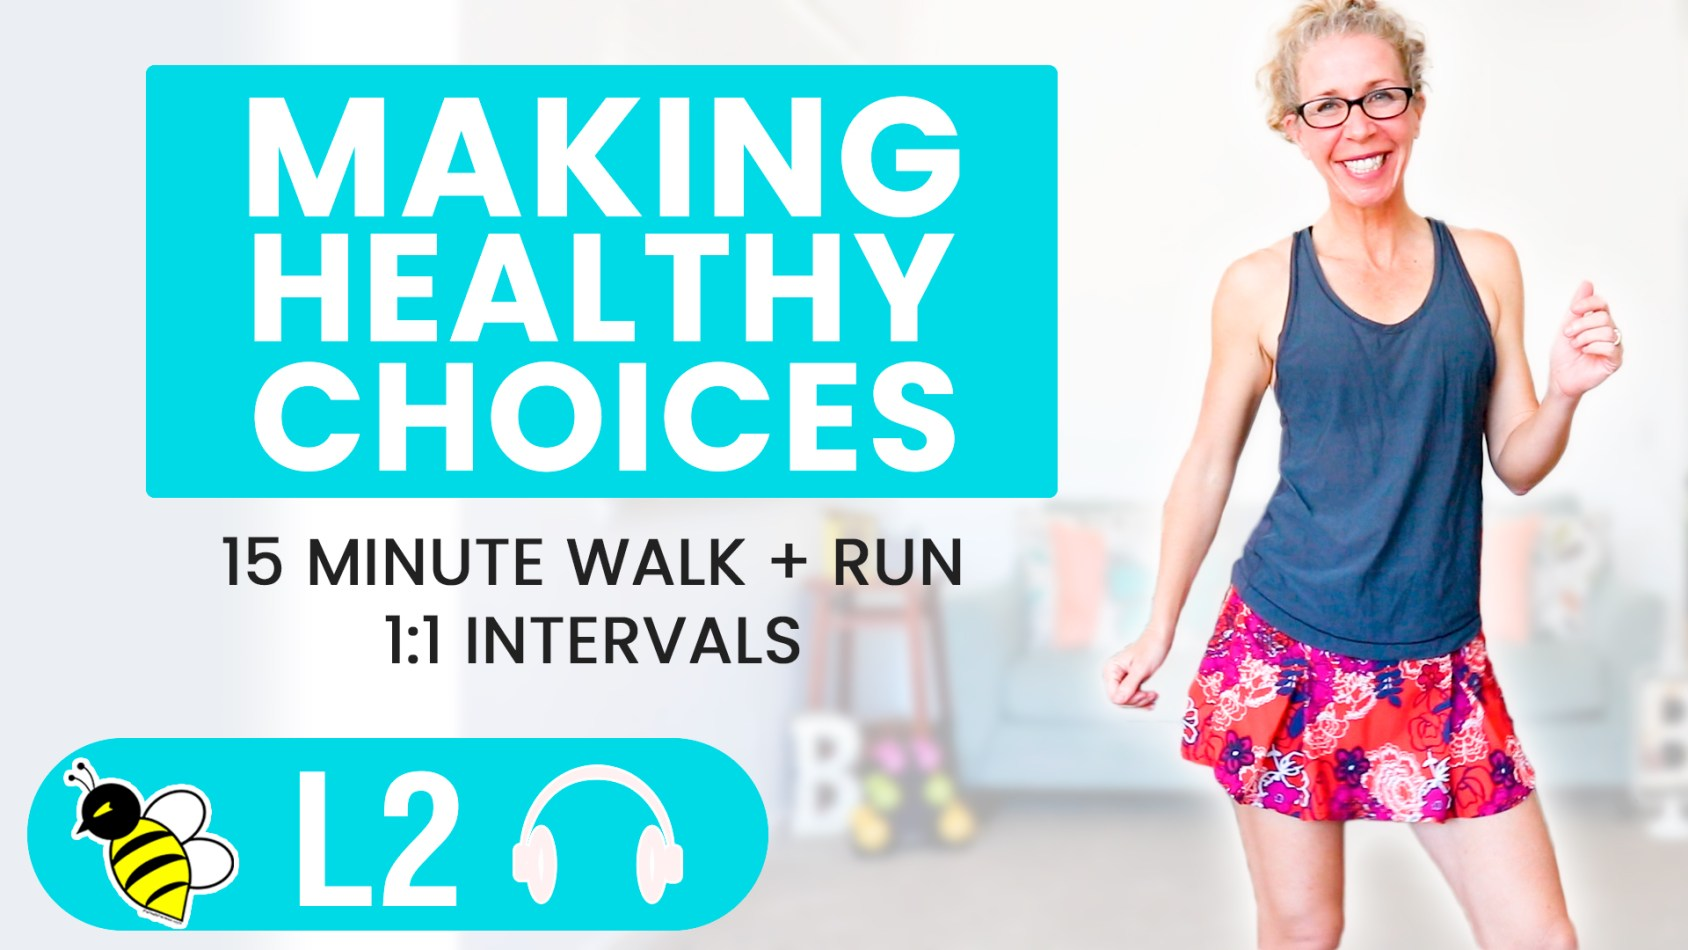 Making HEALTHY CHOICES when you don't want to 15 minute WALK + RUN